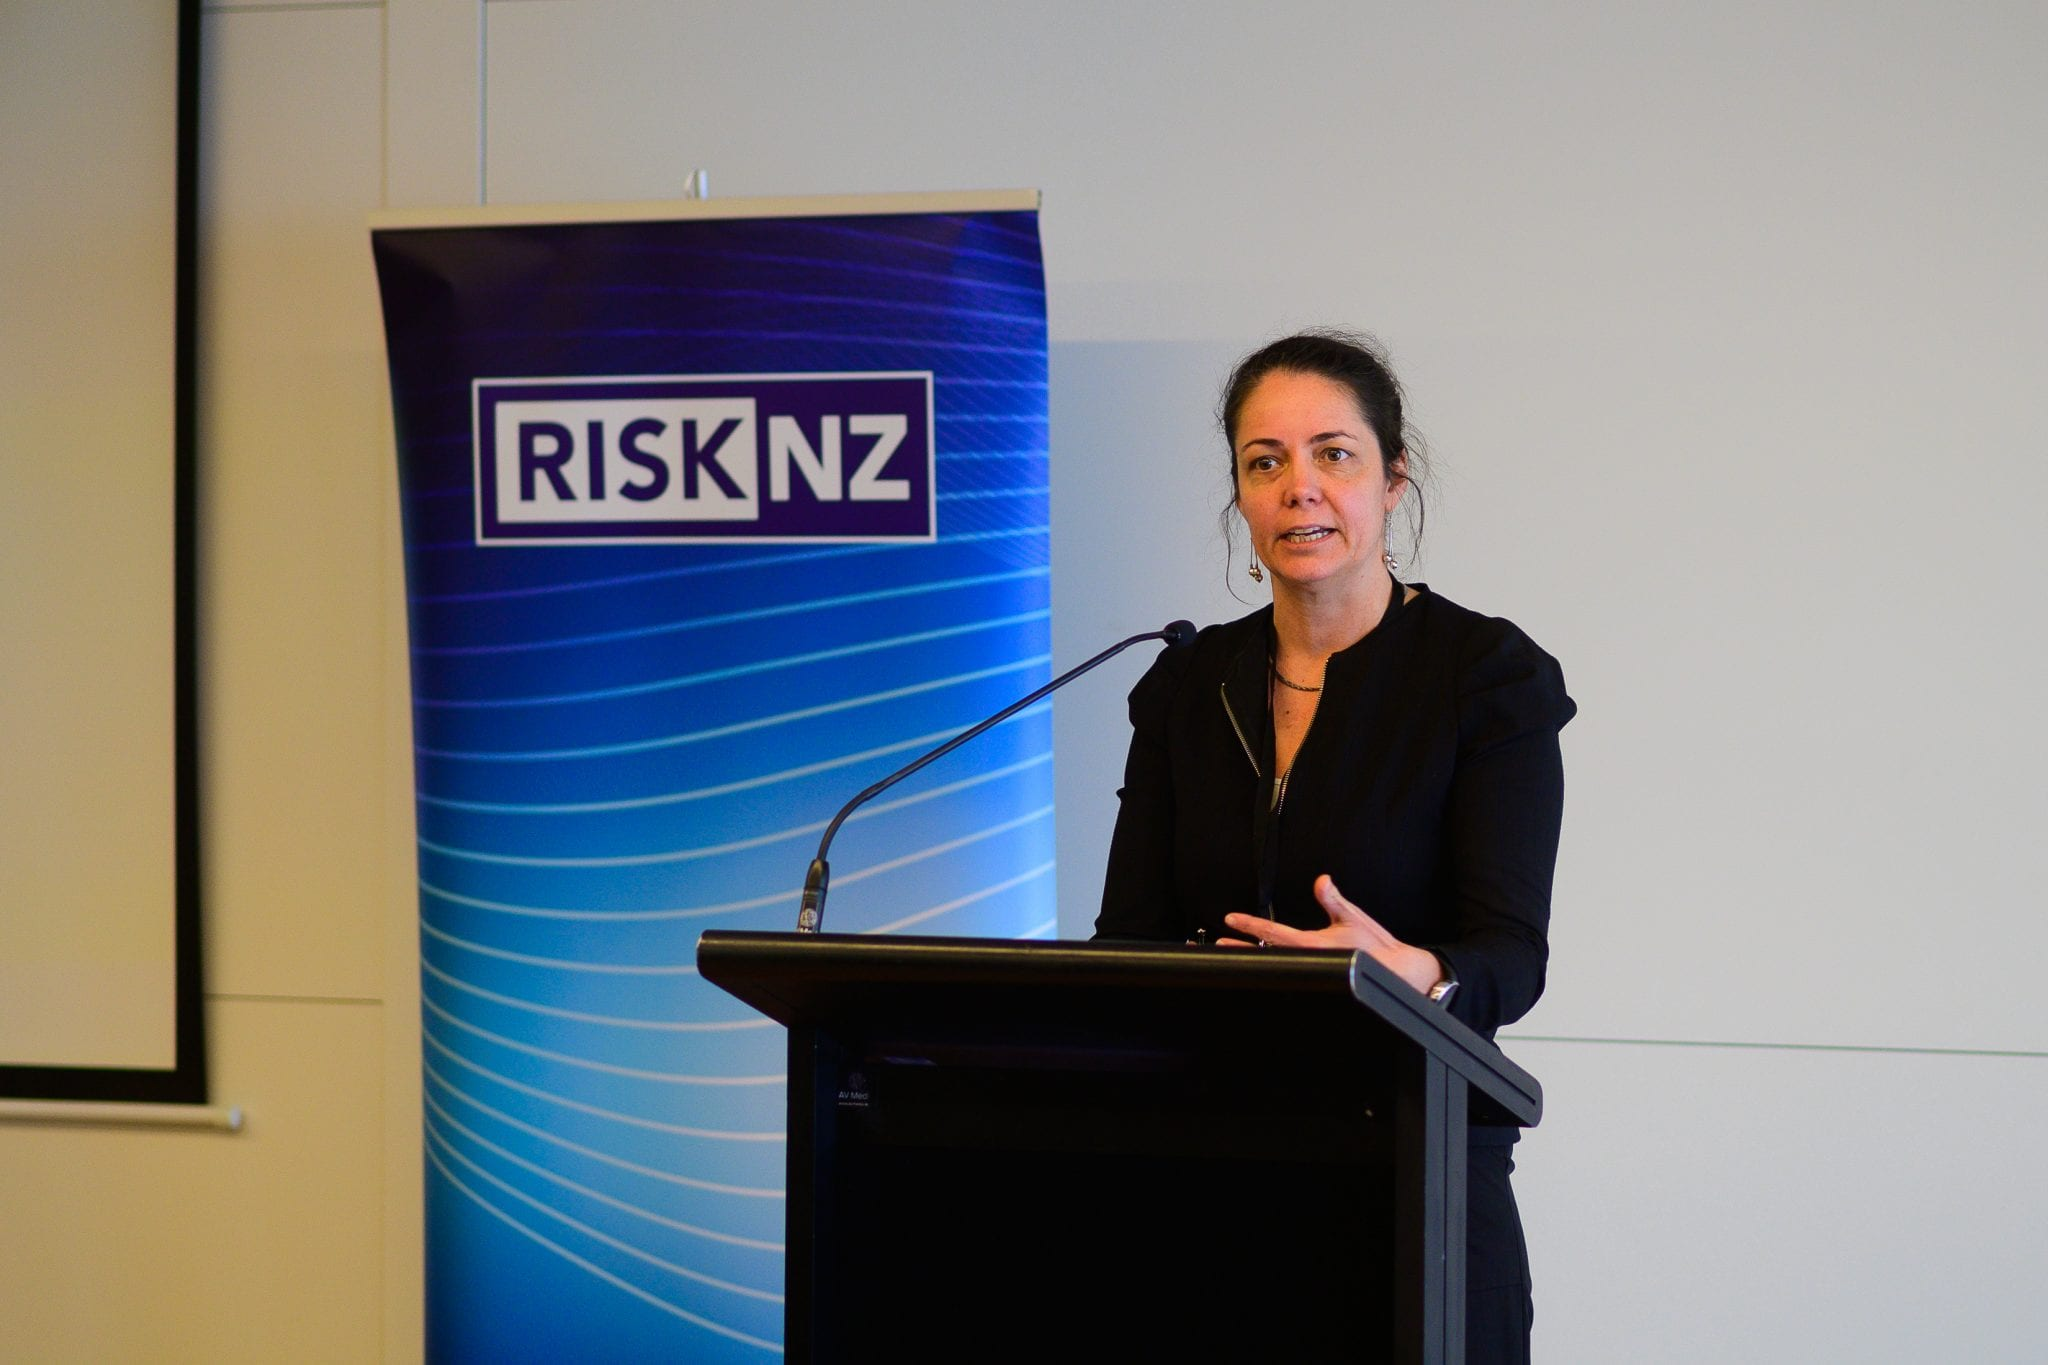 Catriona Robinson, Director of National Security Systems, Department of the Prime Minister and Cabinet (DPMC). Topic: New Zealand's risk-based national security system.